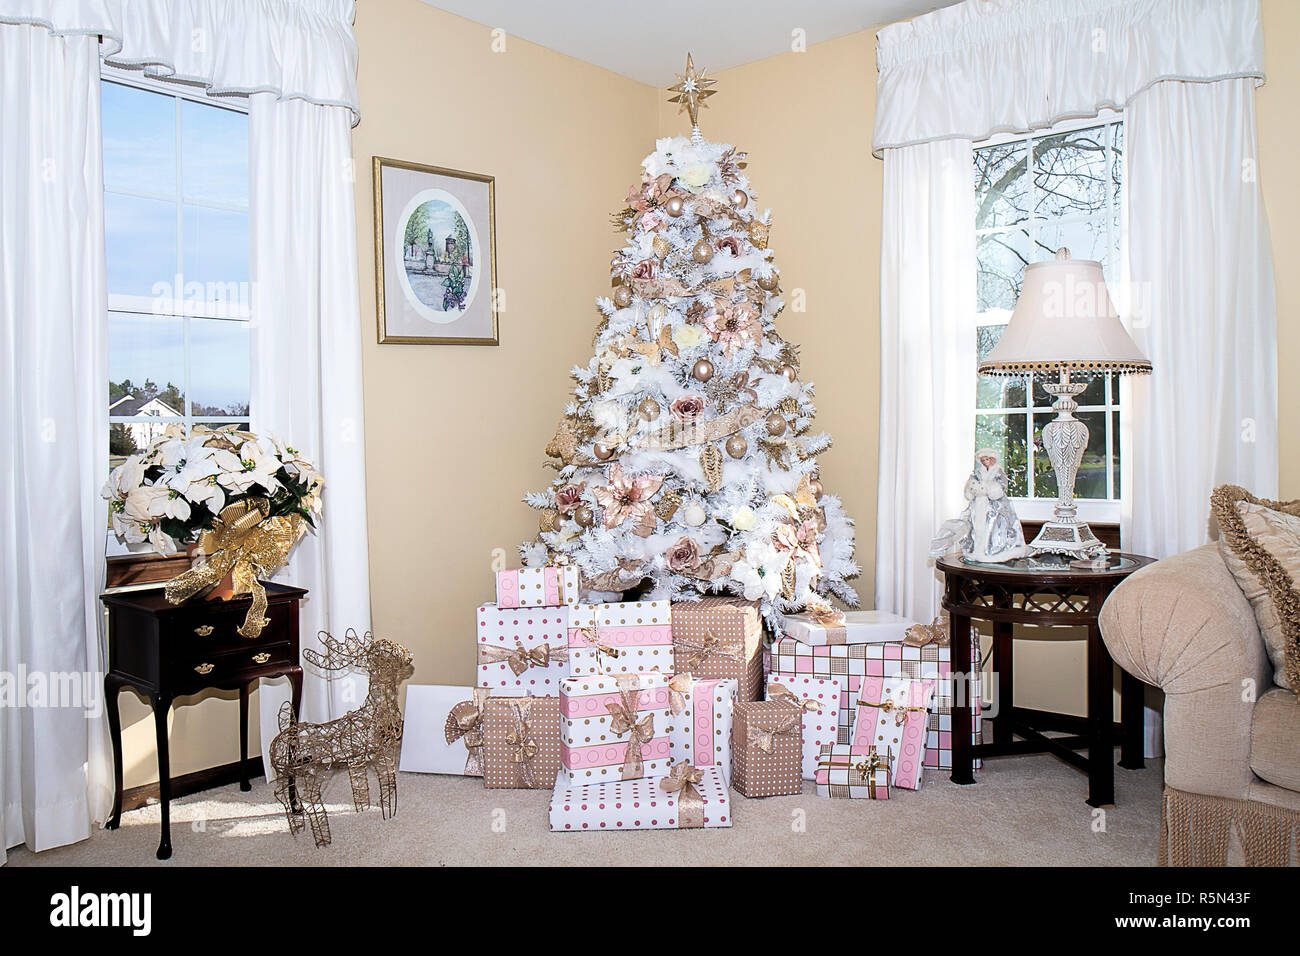 . White dreamy Christmas tree in living room of home decorated in